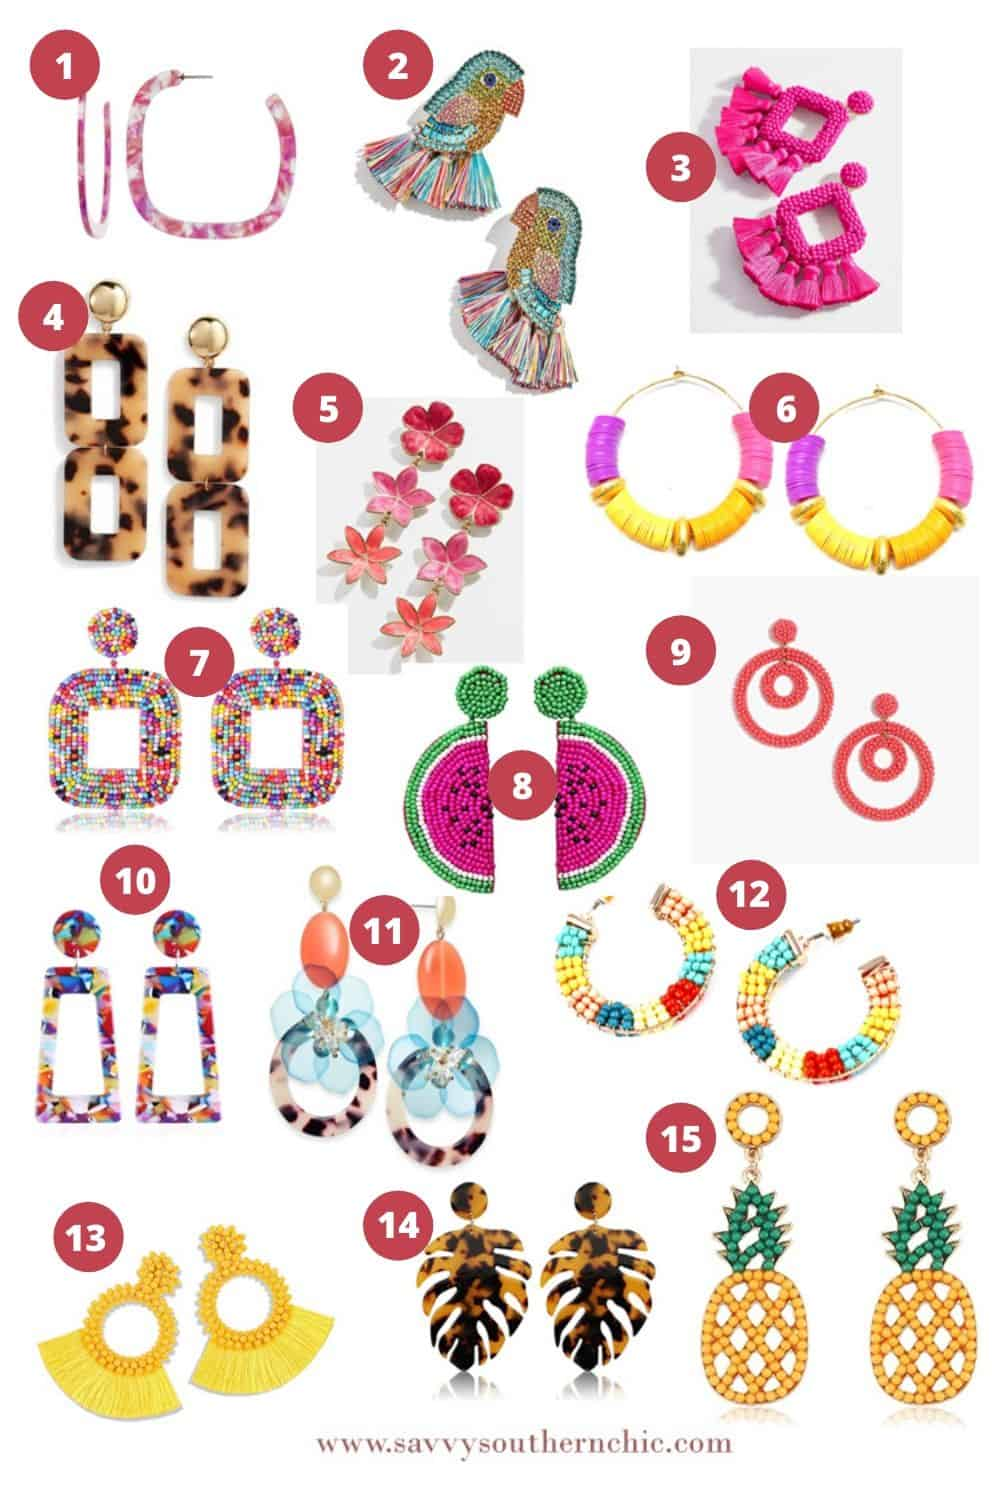 15 fun statement earrings for summer